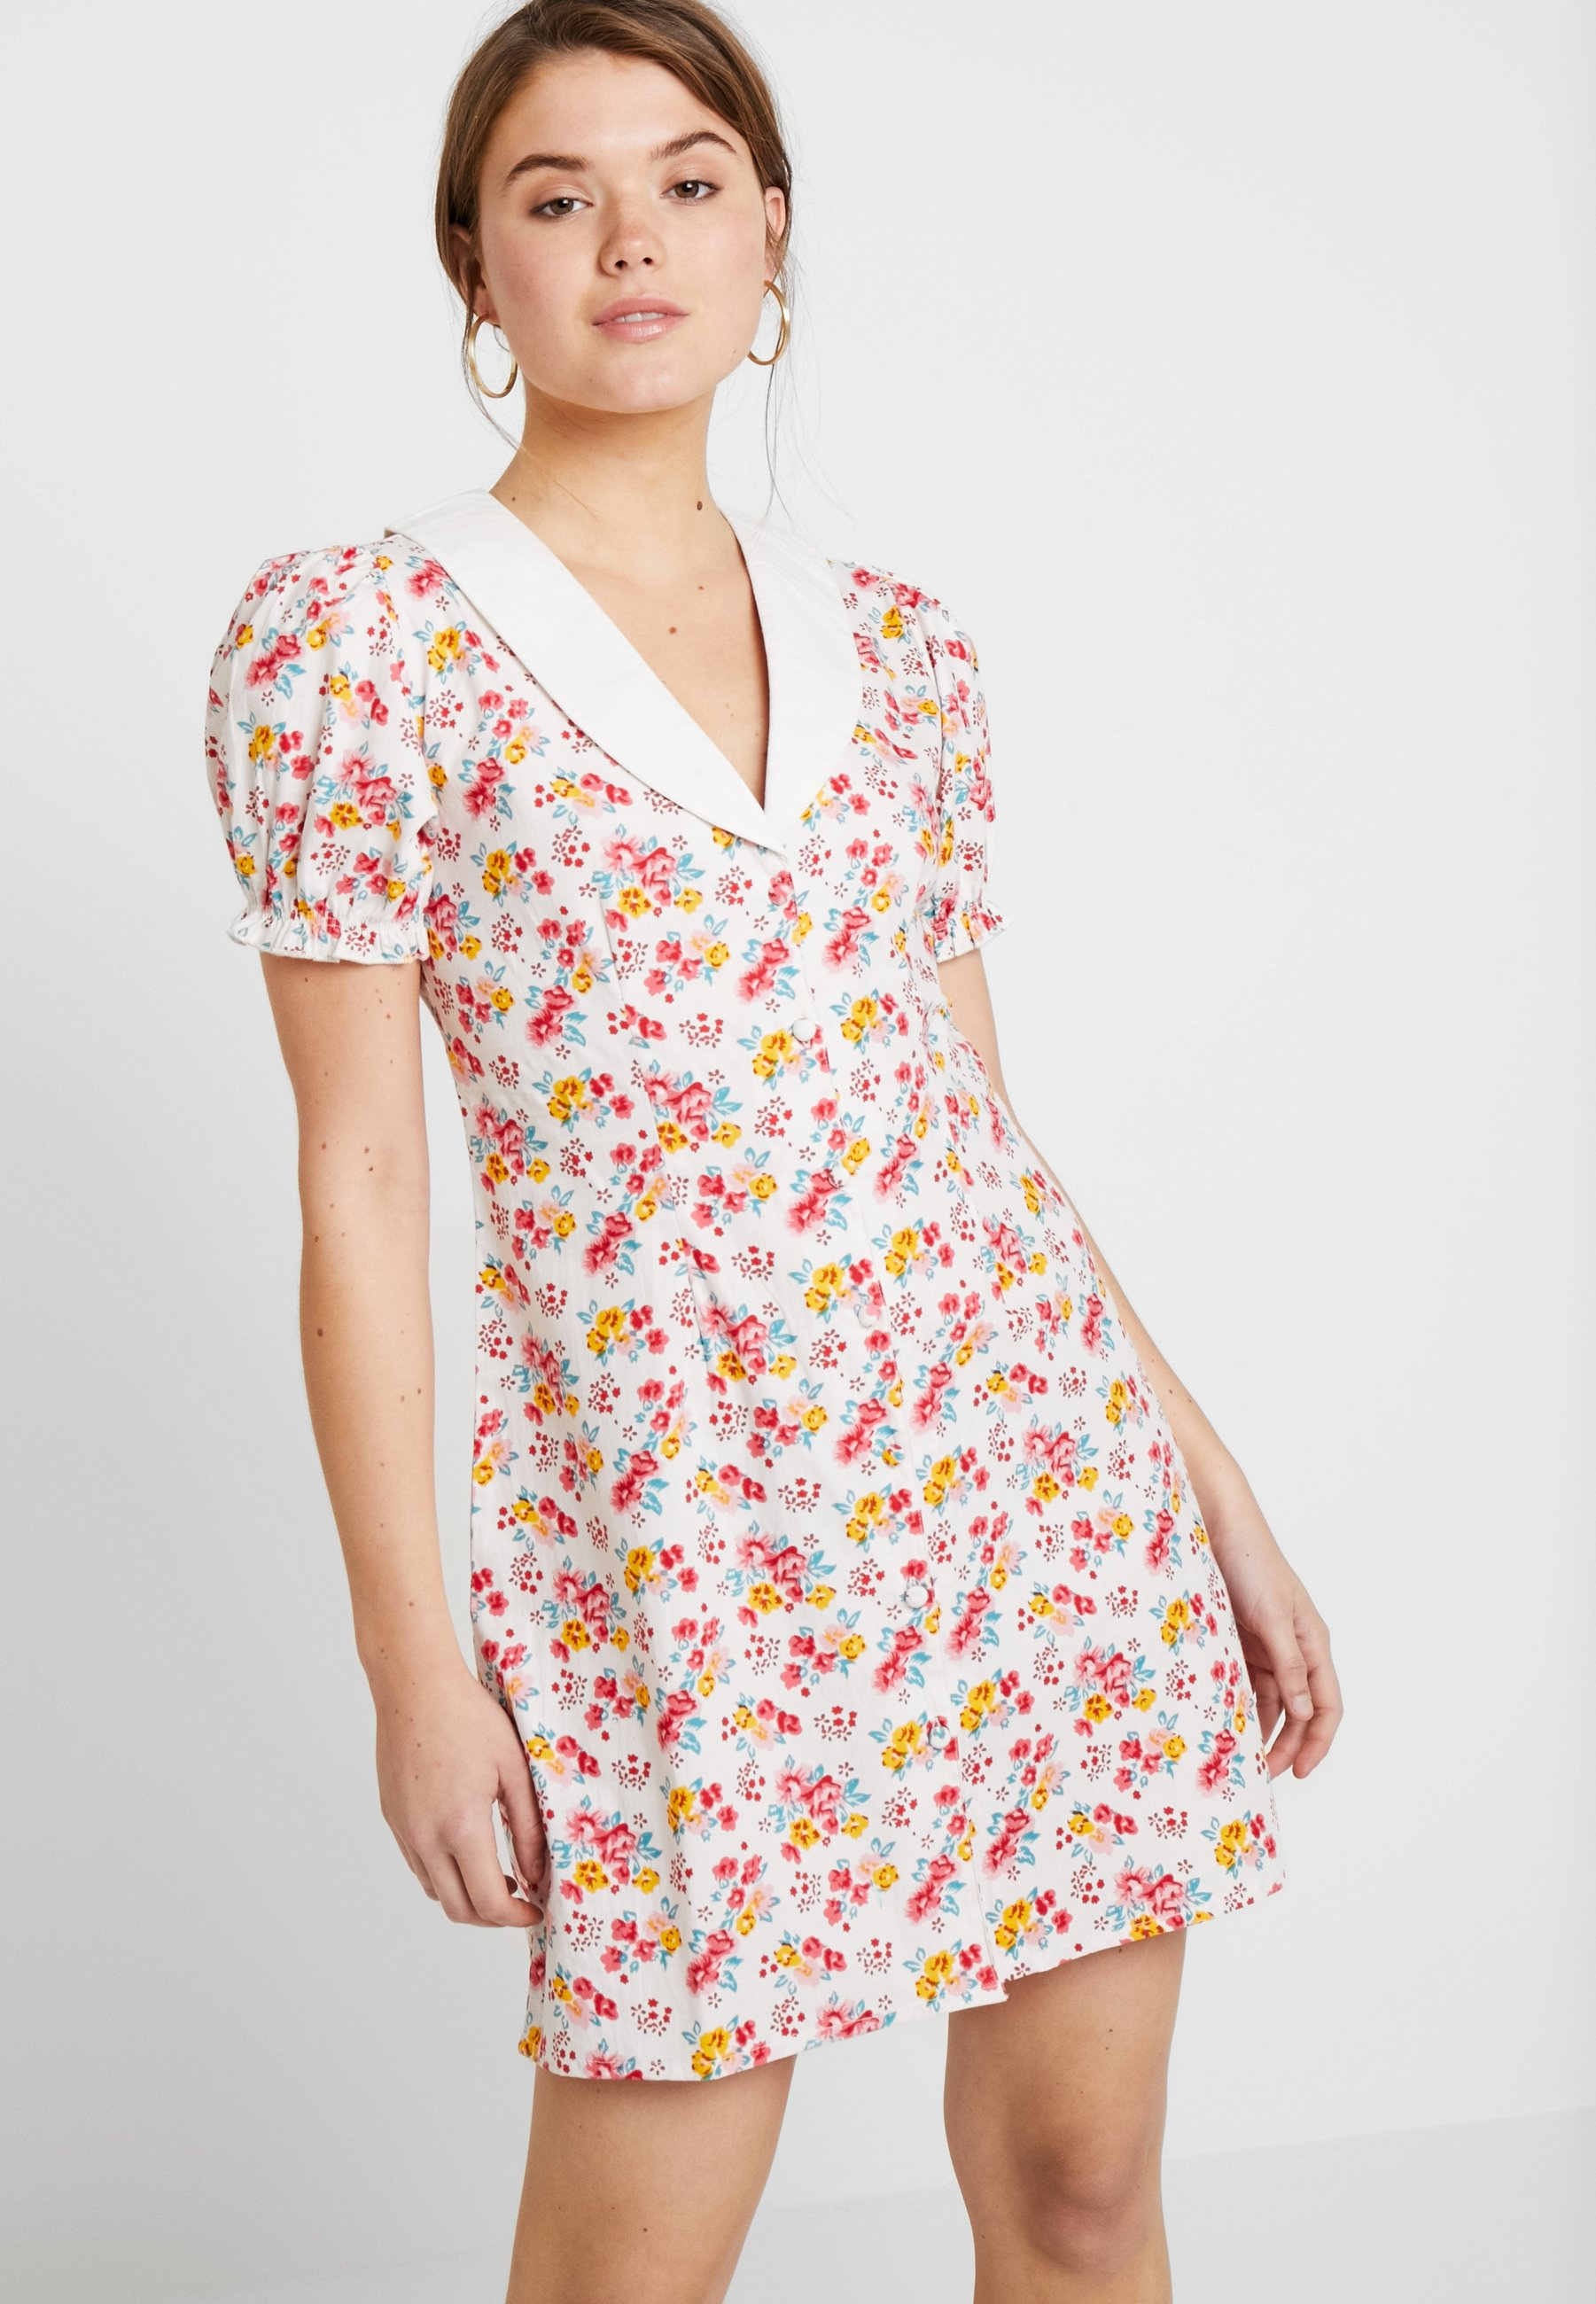 Contrast DressRobe Chemise Nly White Mini By Collar Nelly GqzUpMSV